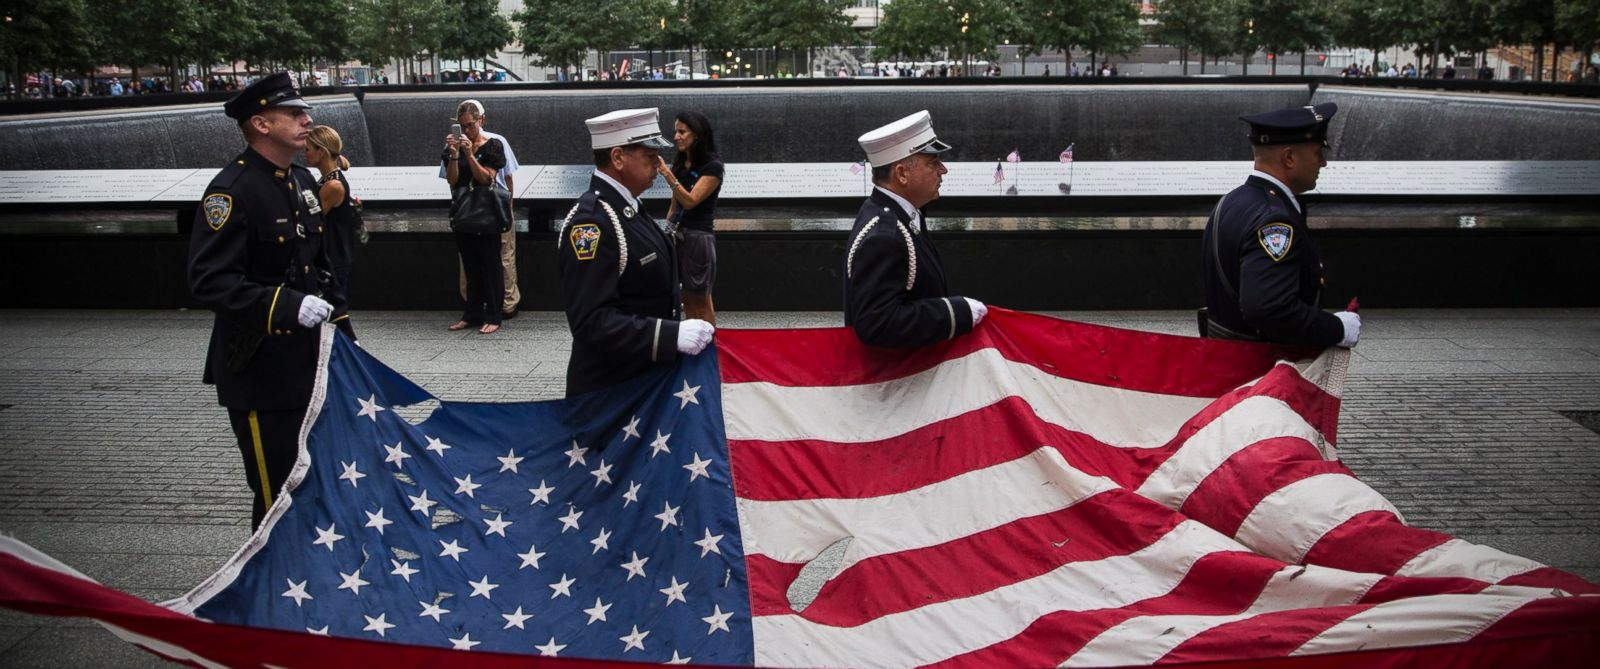 PHOTO: Members of the New York Police Department, Fire Department of New York and Port Authority of New York and New Jersey Police Department carry an American flag at the beginning of the memorial observances in New York, Sept. 11, 2014.